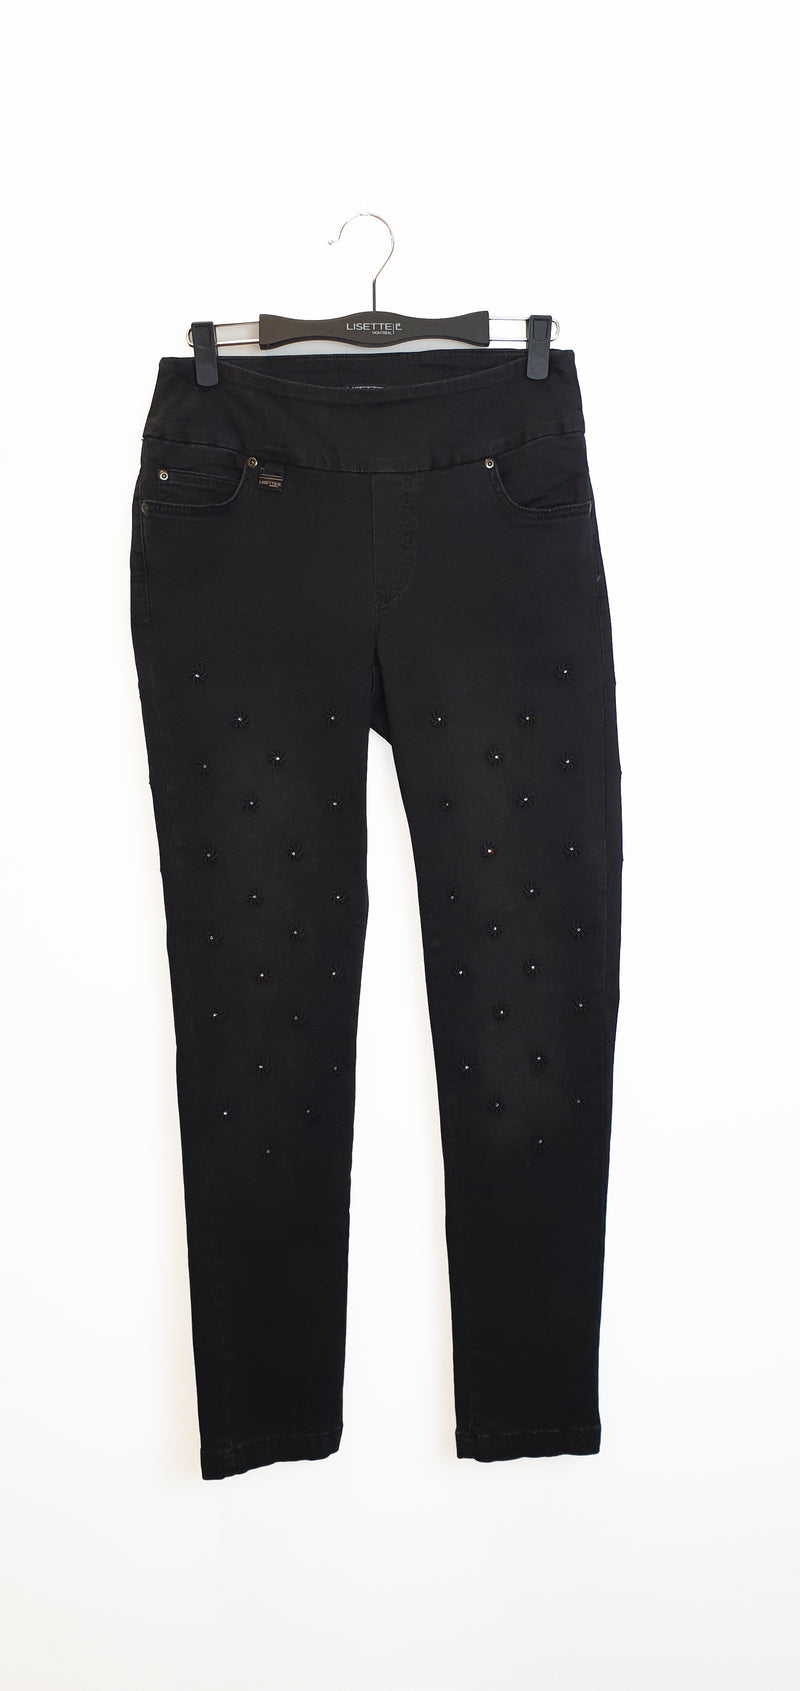 455613 Slim BETTY DENIM EMBROIDERED -  - Pants - Lisette L Montreal Australia - The Rarity Group